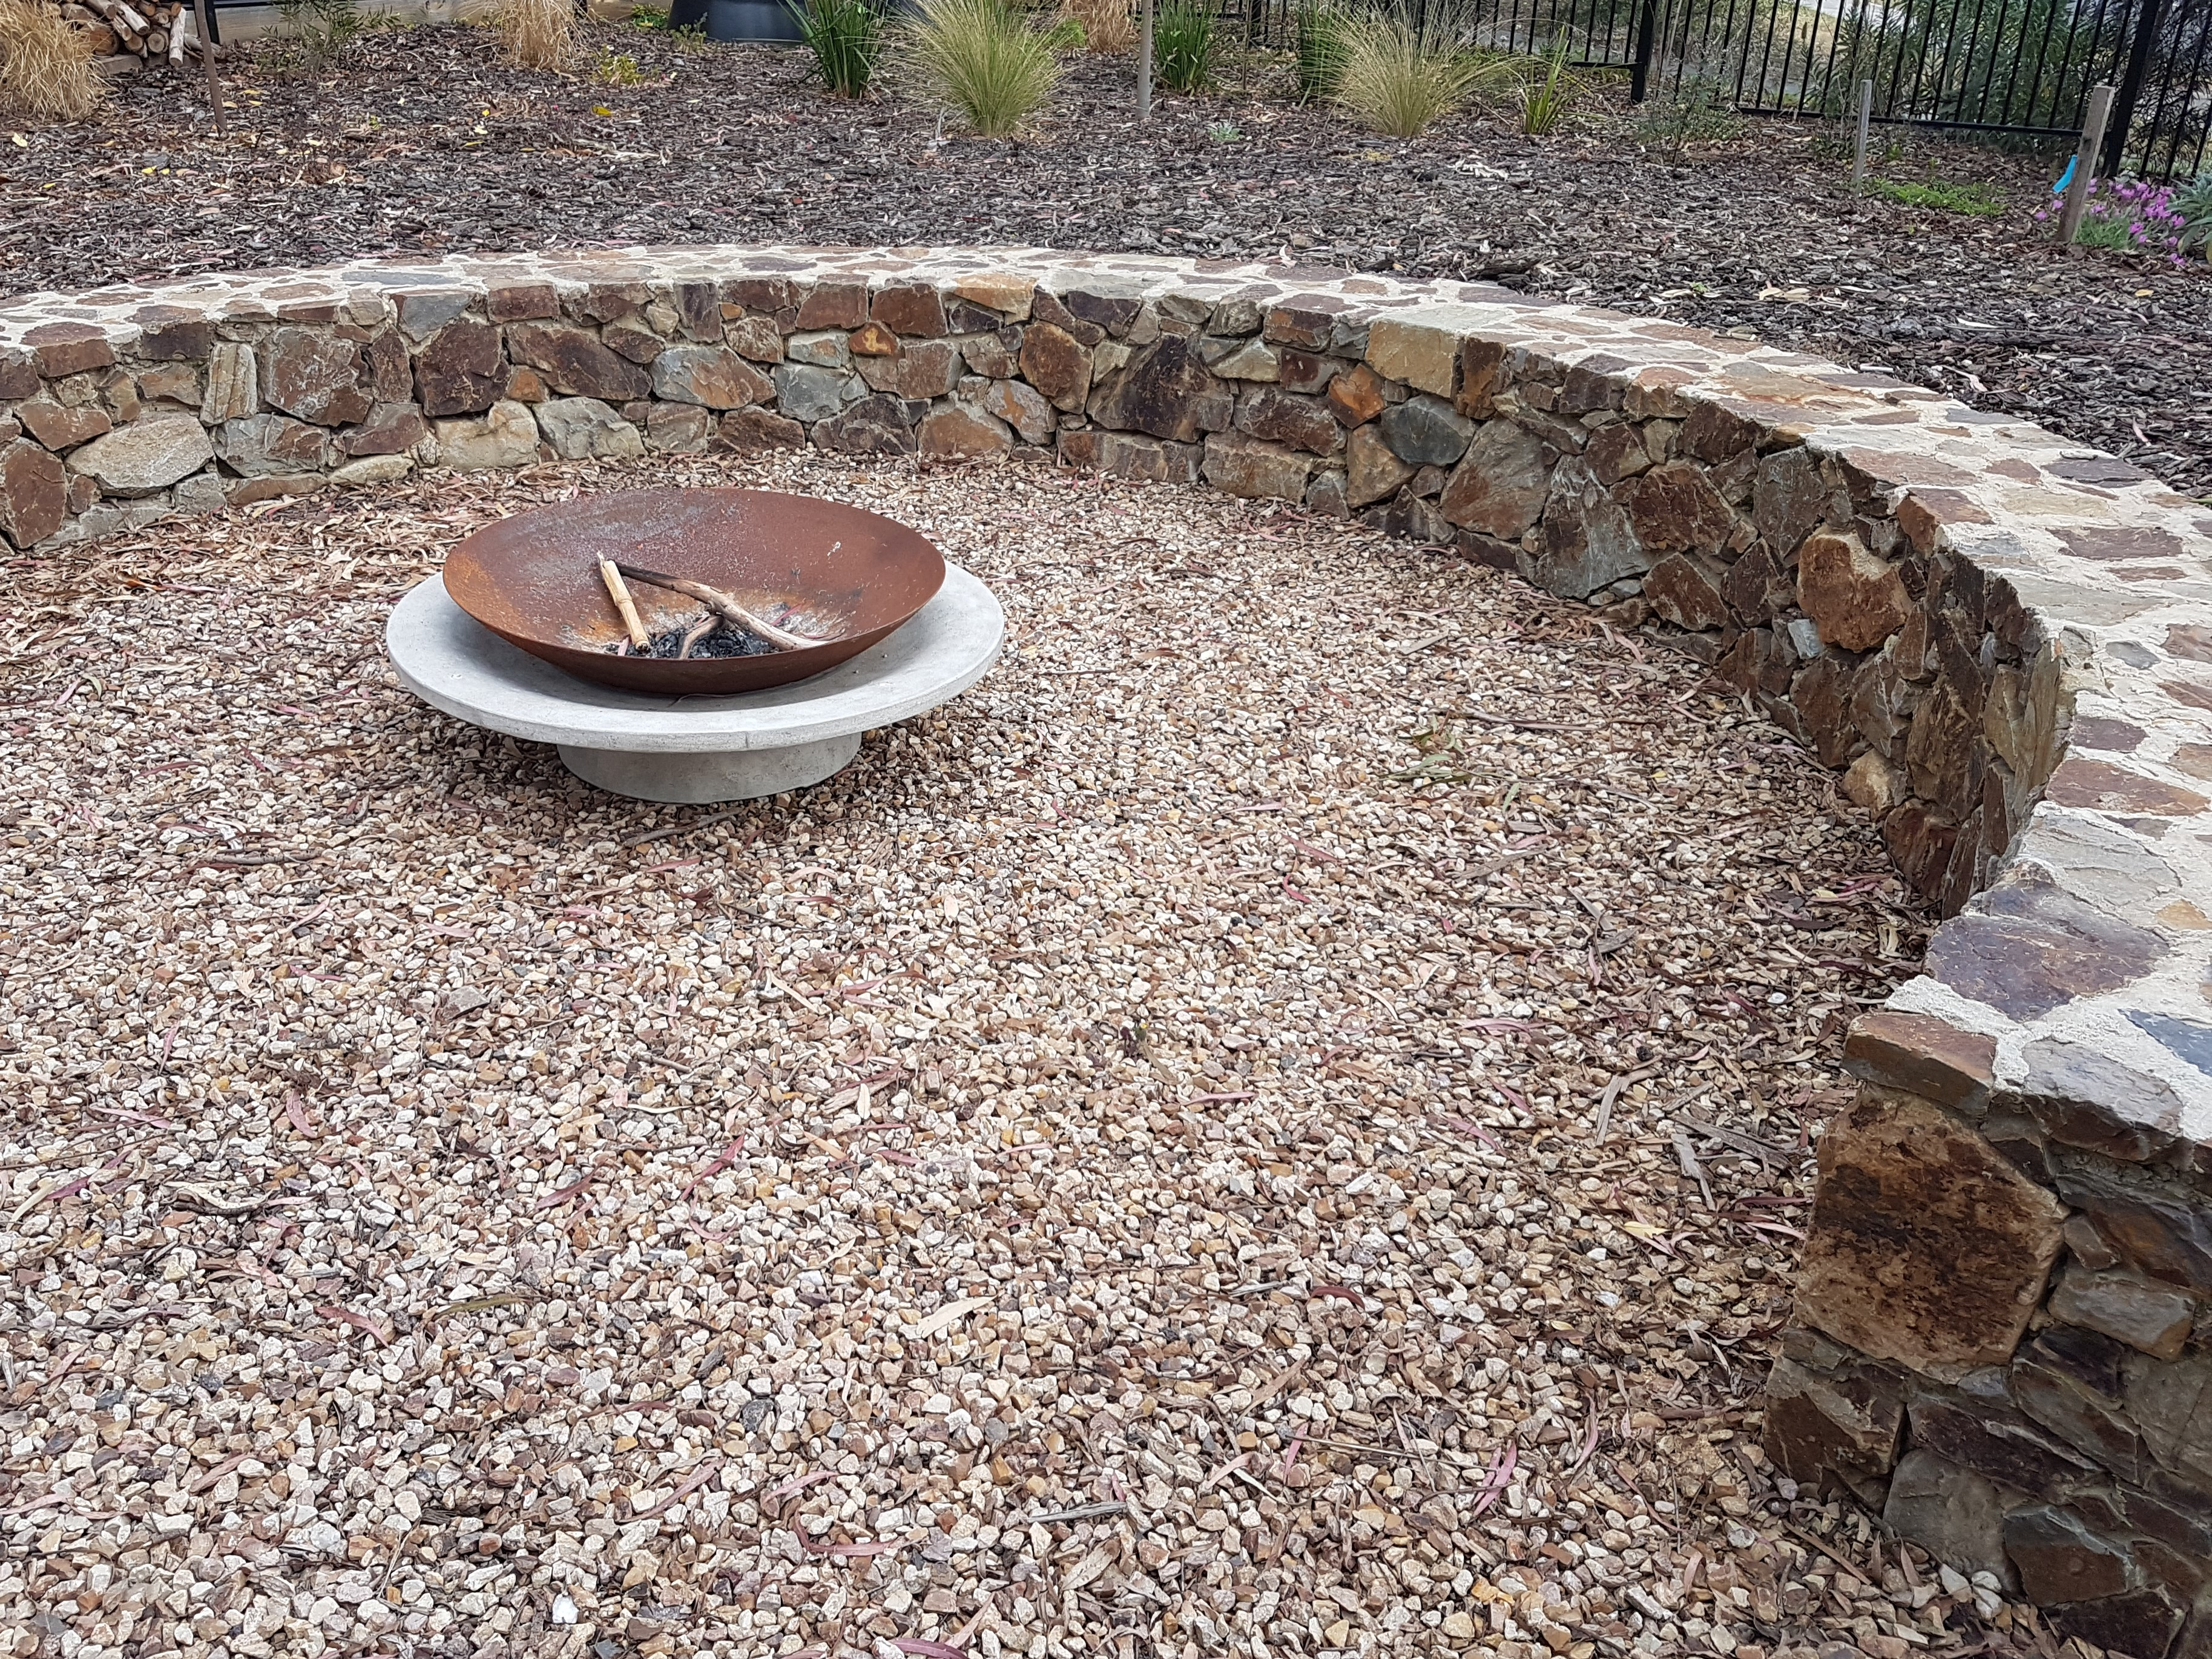 Circular seat, Fire pit, Coldstream stone, seat, Circular stone seat, metal fire pit.